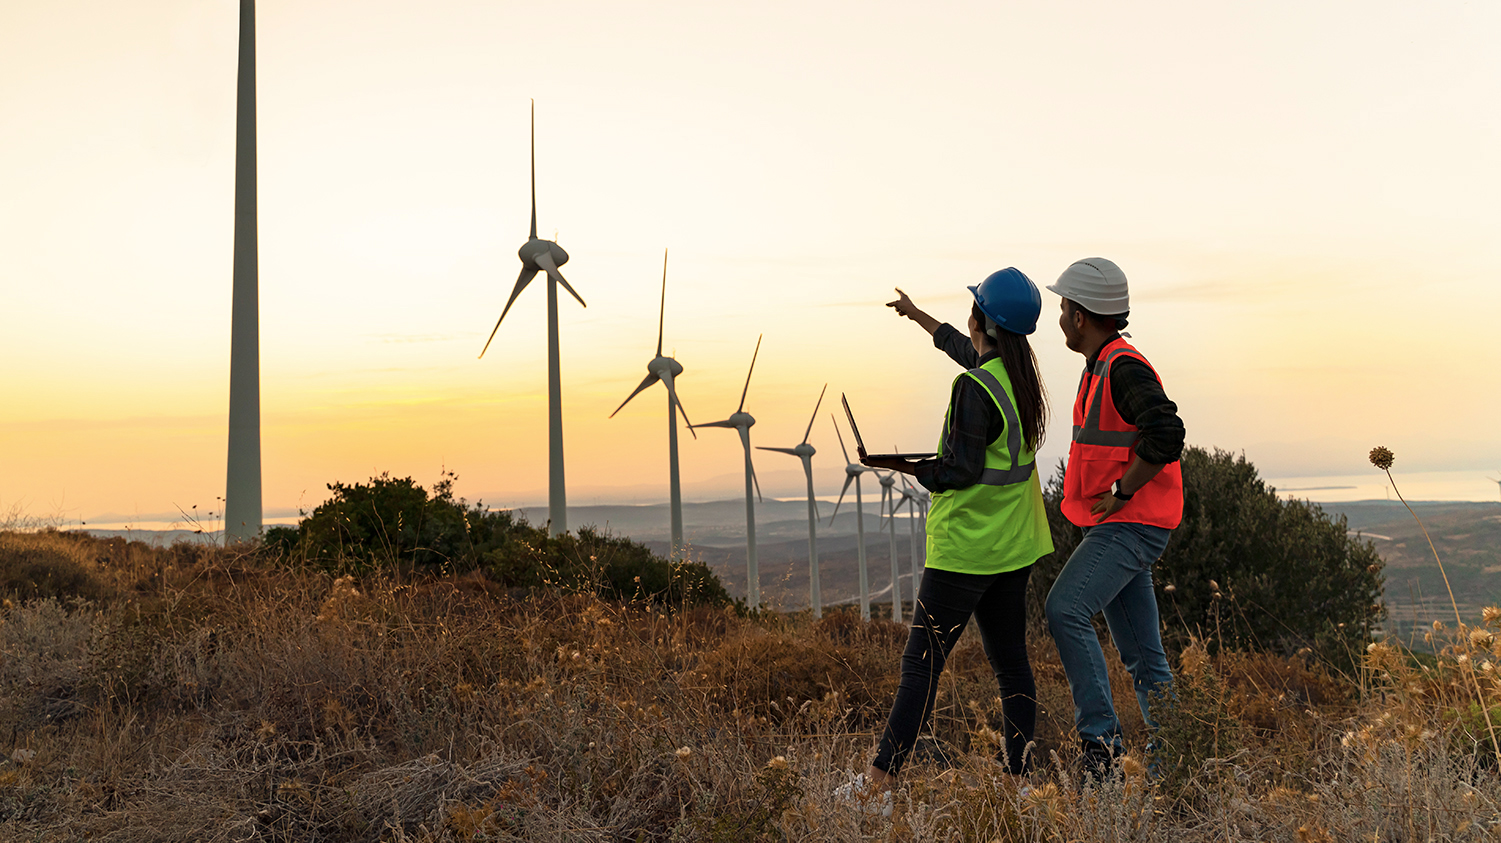 Photo shows two workers in hi-vis jackets and helmets pointing at a row of wind turbines. A new Illinois law plans to phase out fossil fuels in favor of clean energy such as wind.